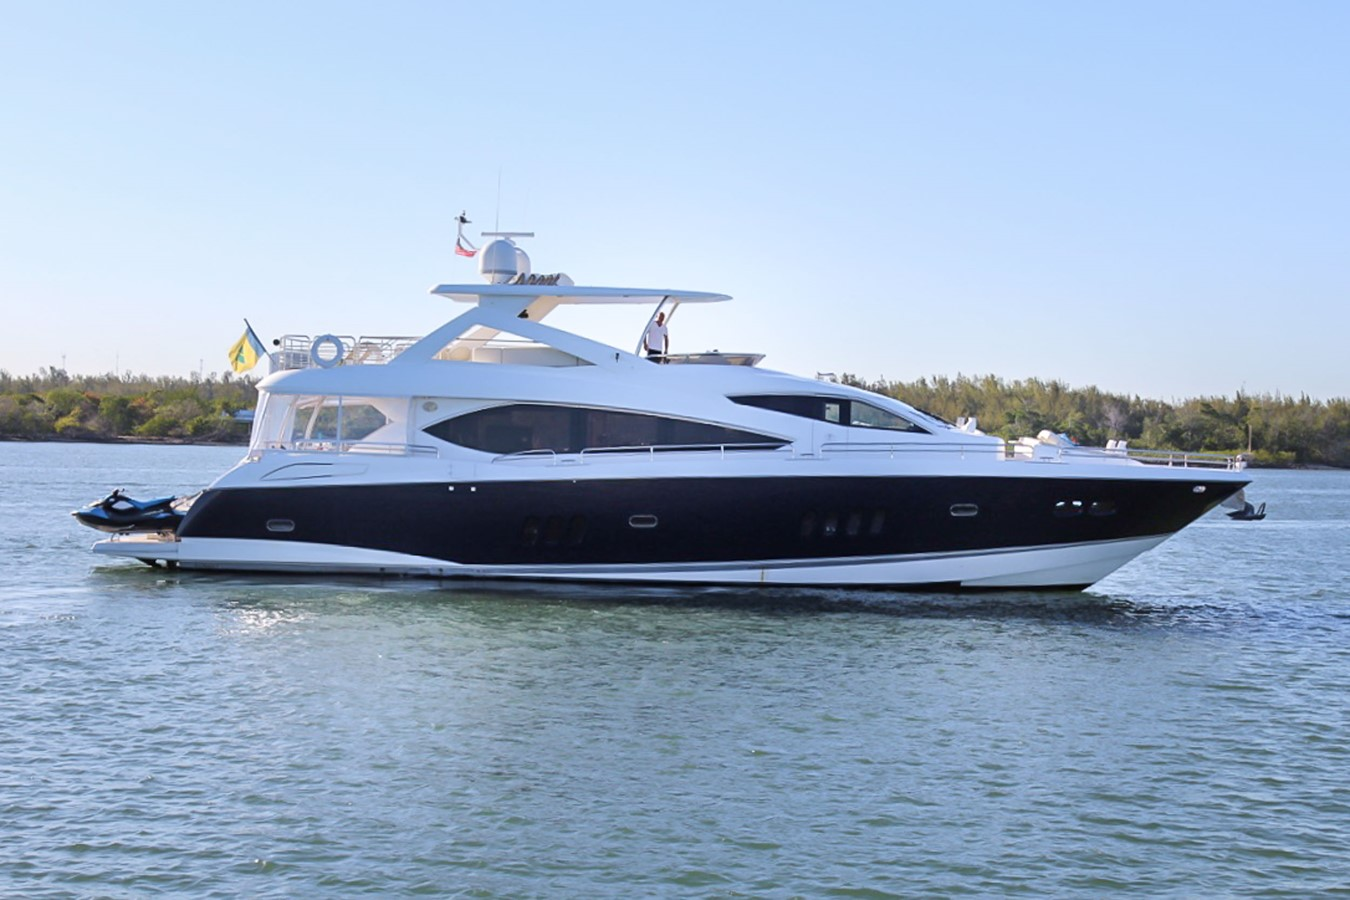 2008 SUNSEEKER Yacht For Sale